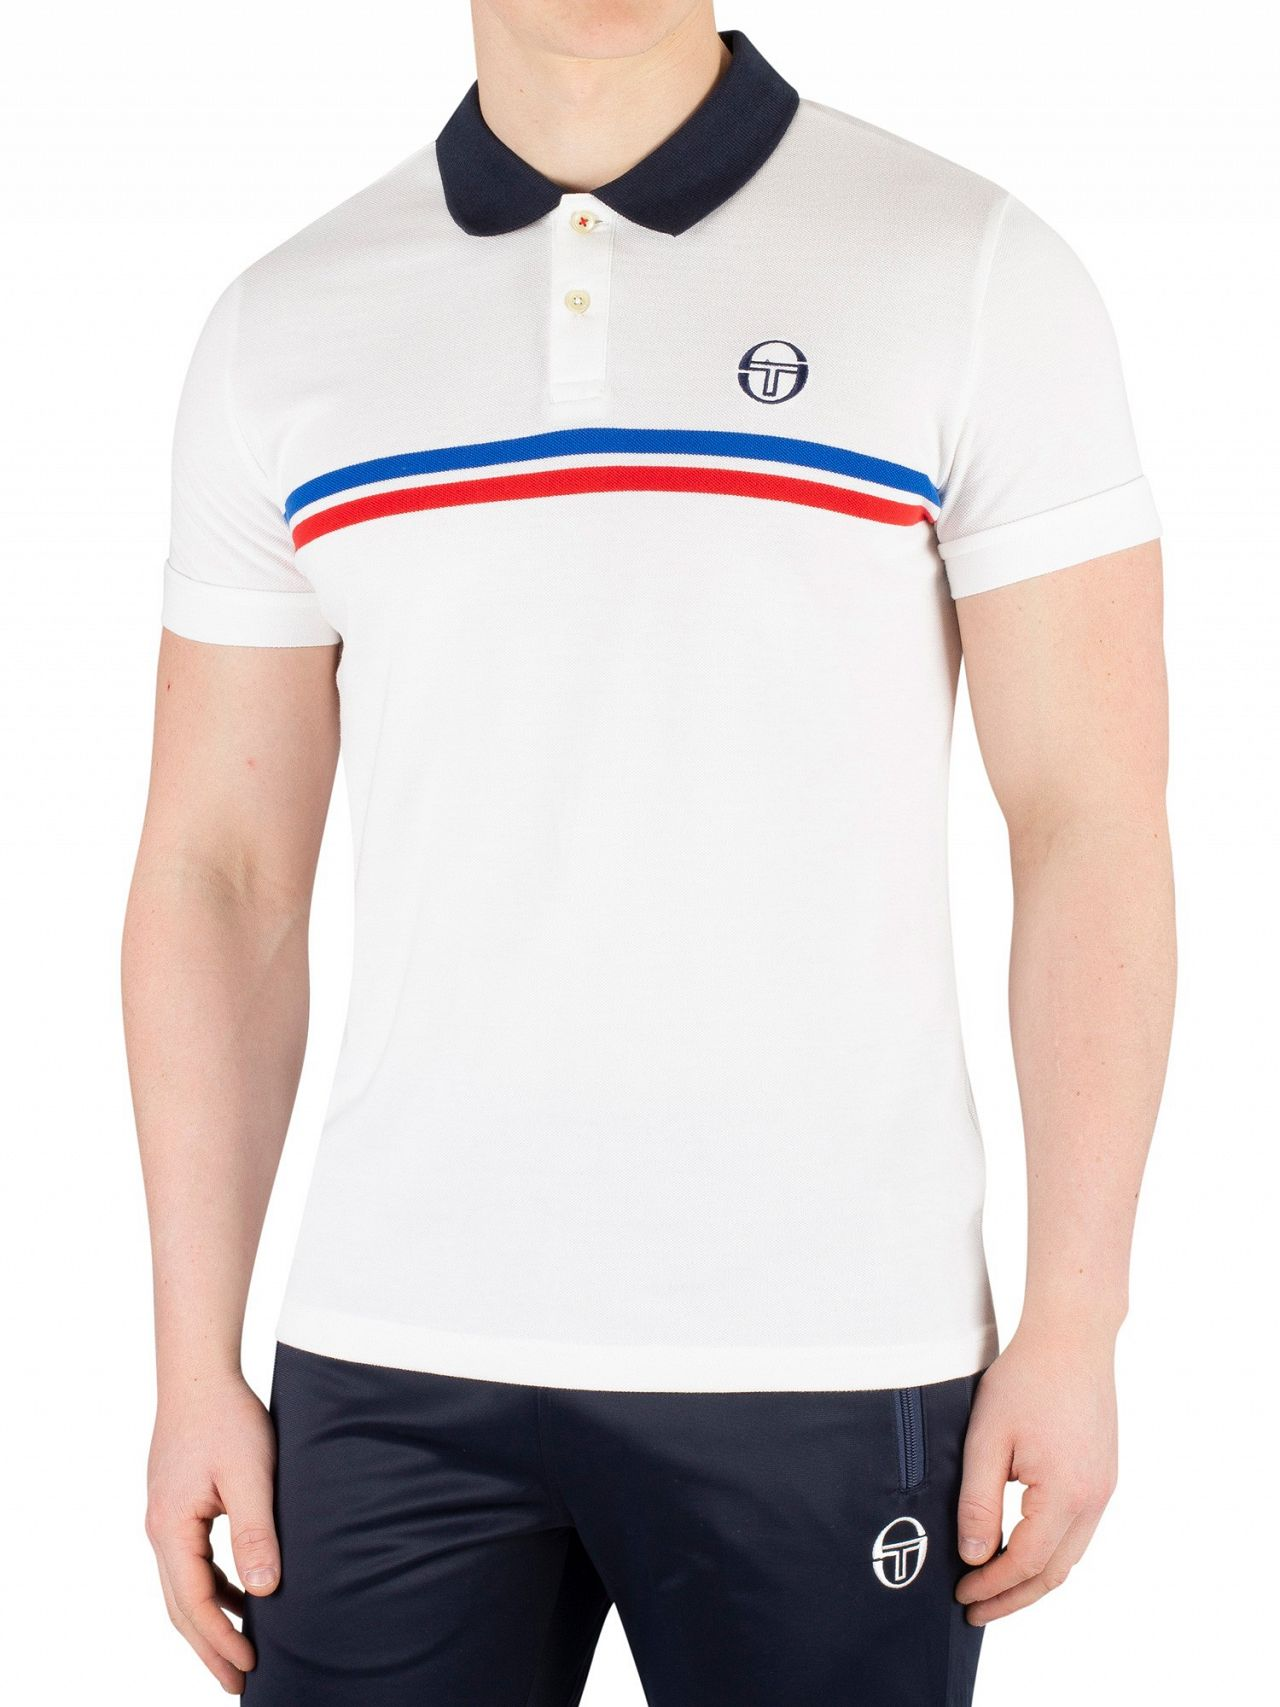 05d54690 Sergio Tacchini White/Royal/Vintage Red Supermac Poloshirt | Standout